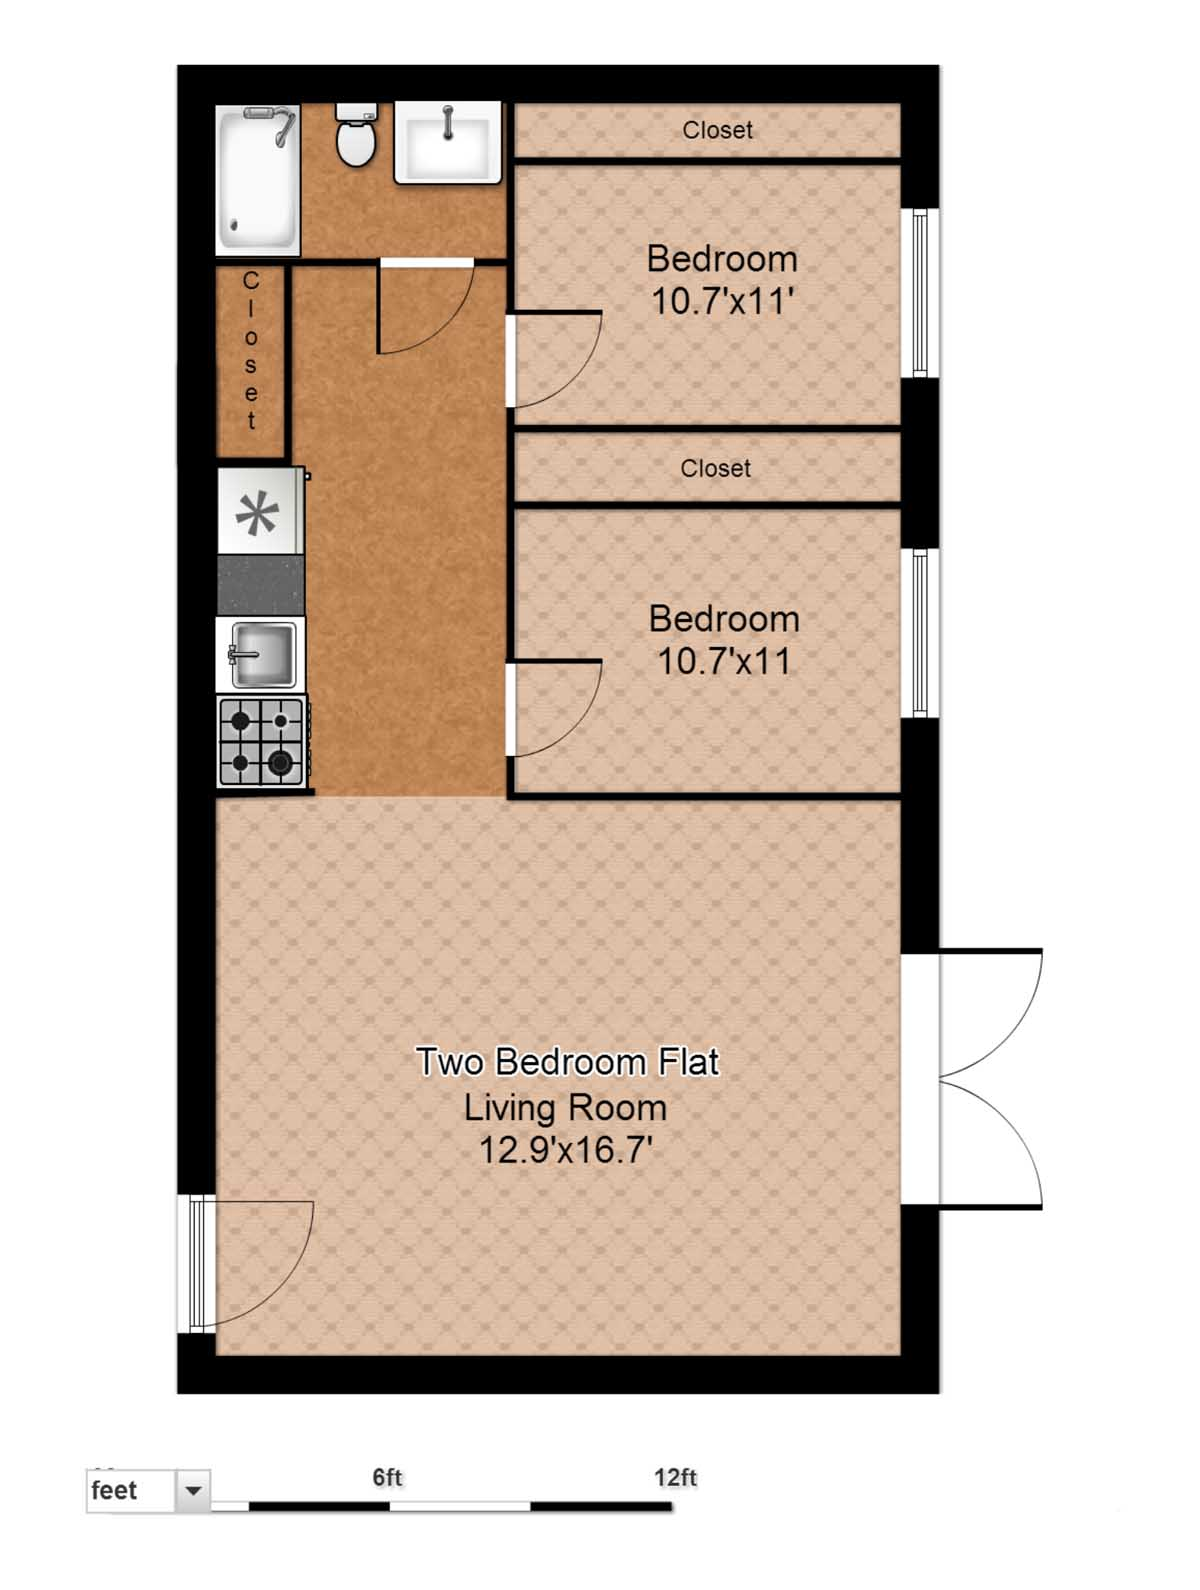 Floor plans evergreen terrace apartmentsevergreen 2 bedroom flat plans